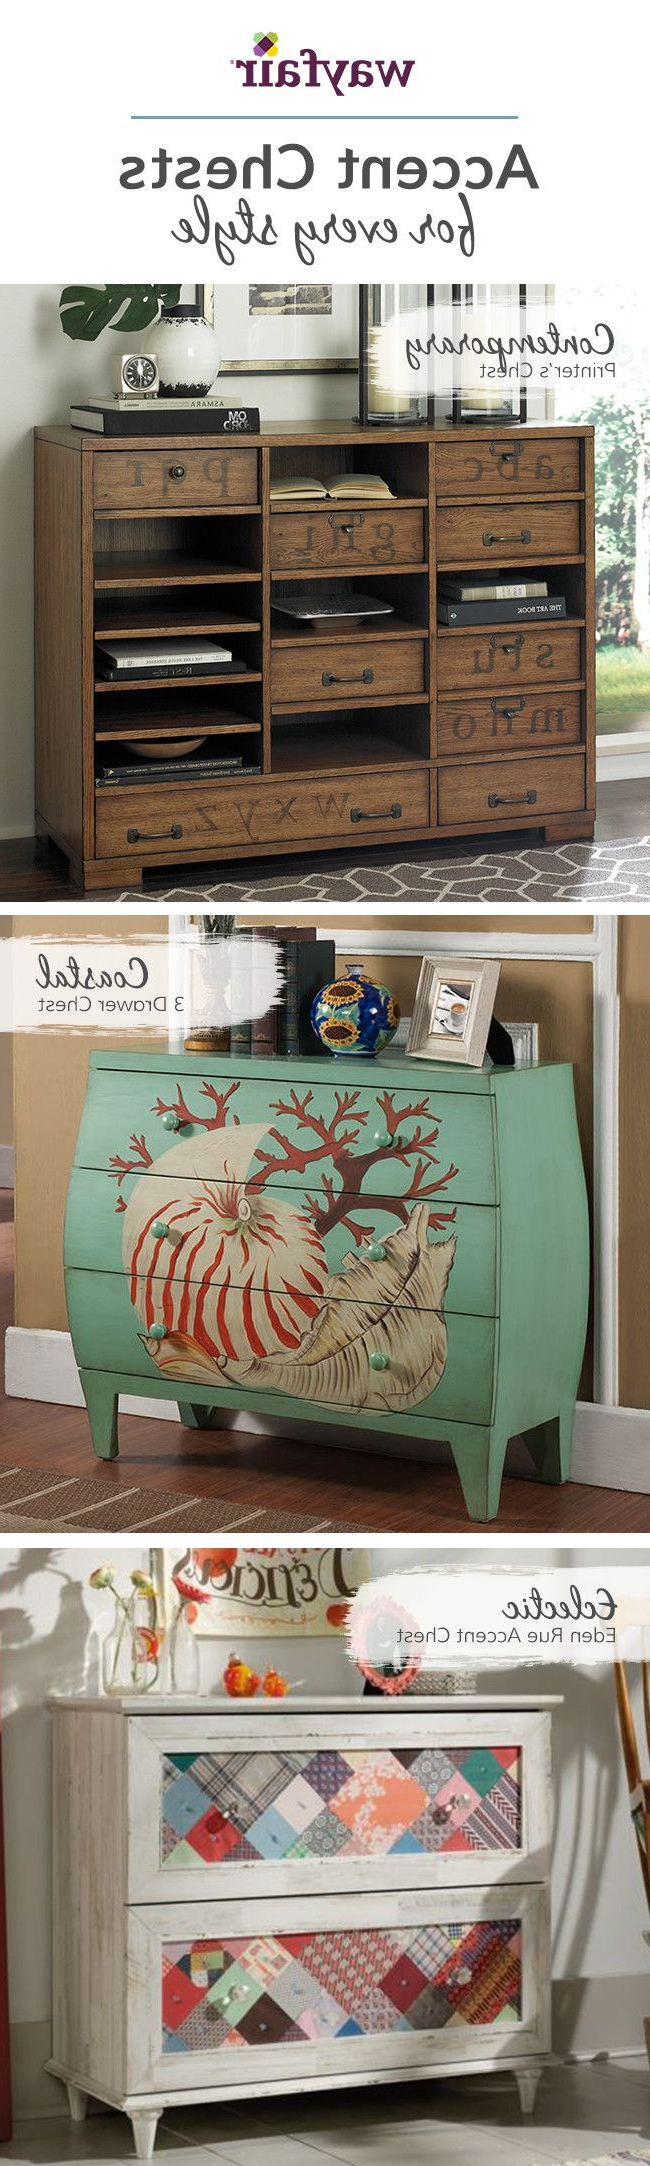 99 Best Things With Drawers Images On Pinterest | Drawers, Chest Of For Jacen 78 Inch Tv Stands (Gallery 14 of 20)